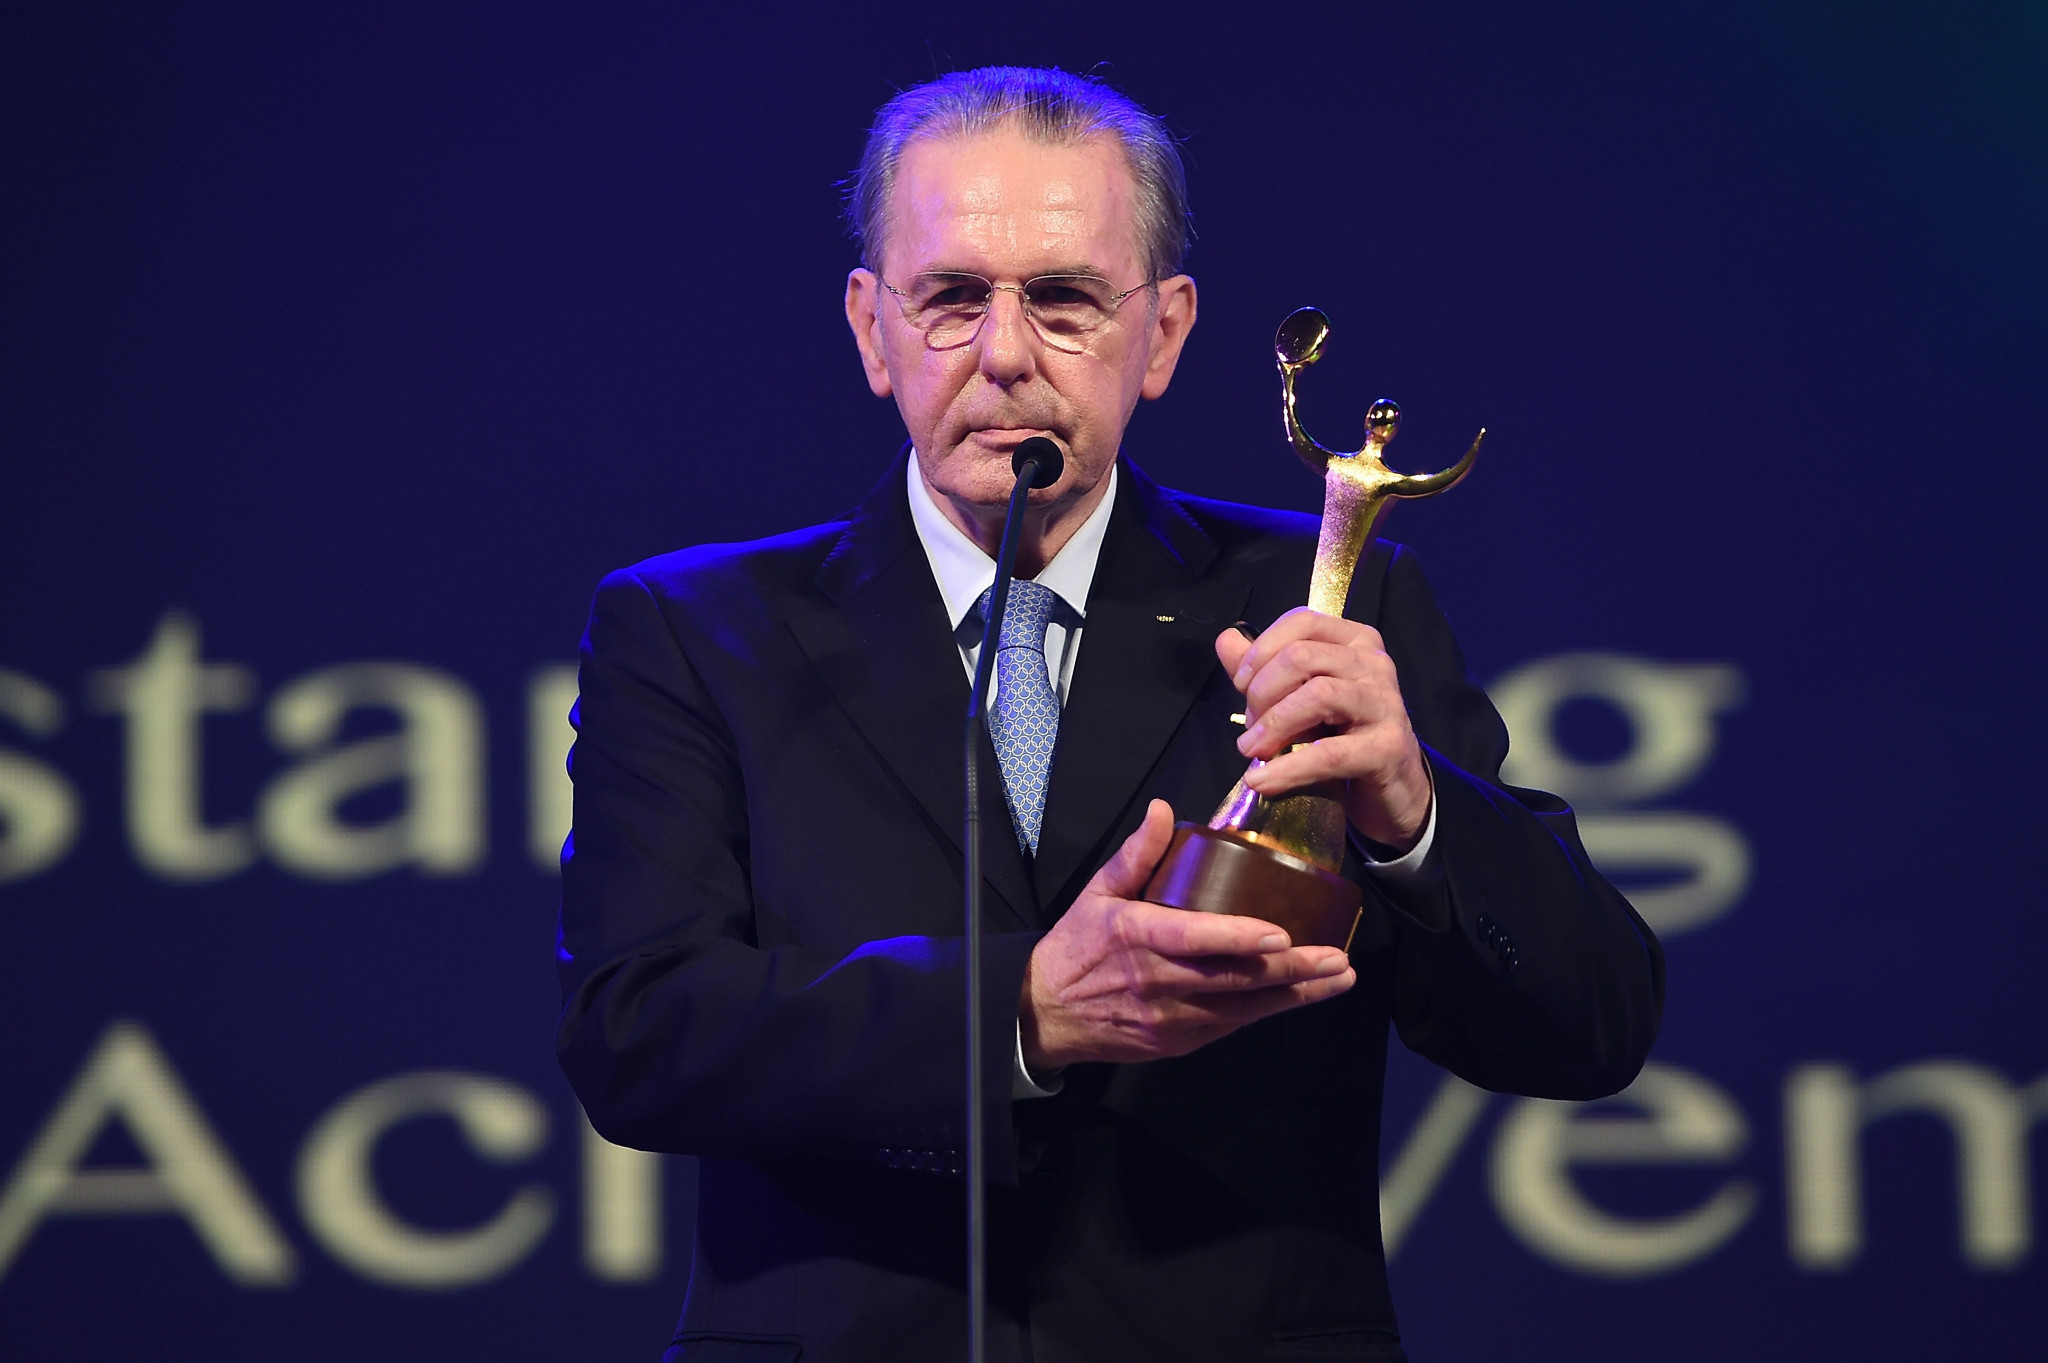 """ANOC """"deeply saddened"""" by death of former IOC President Rogge"""